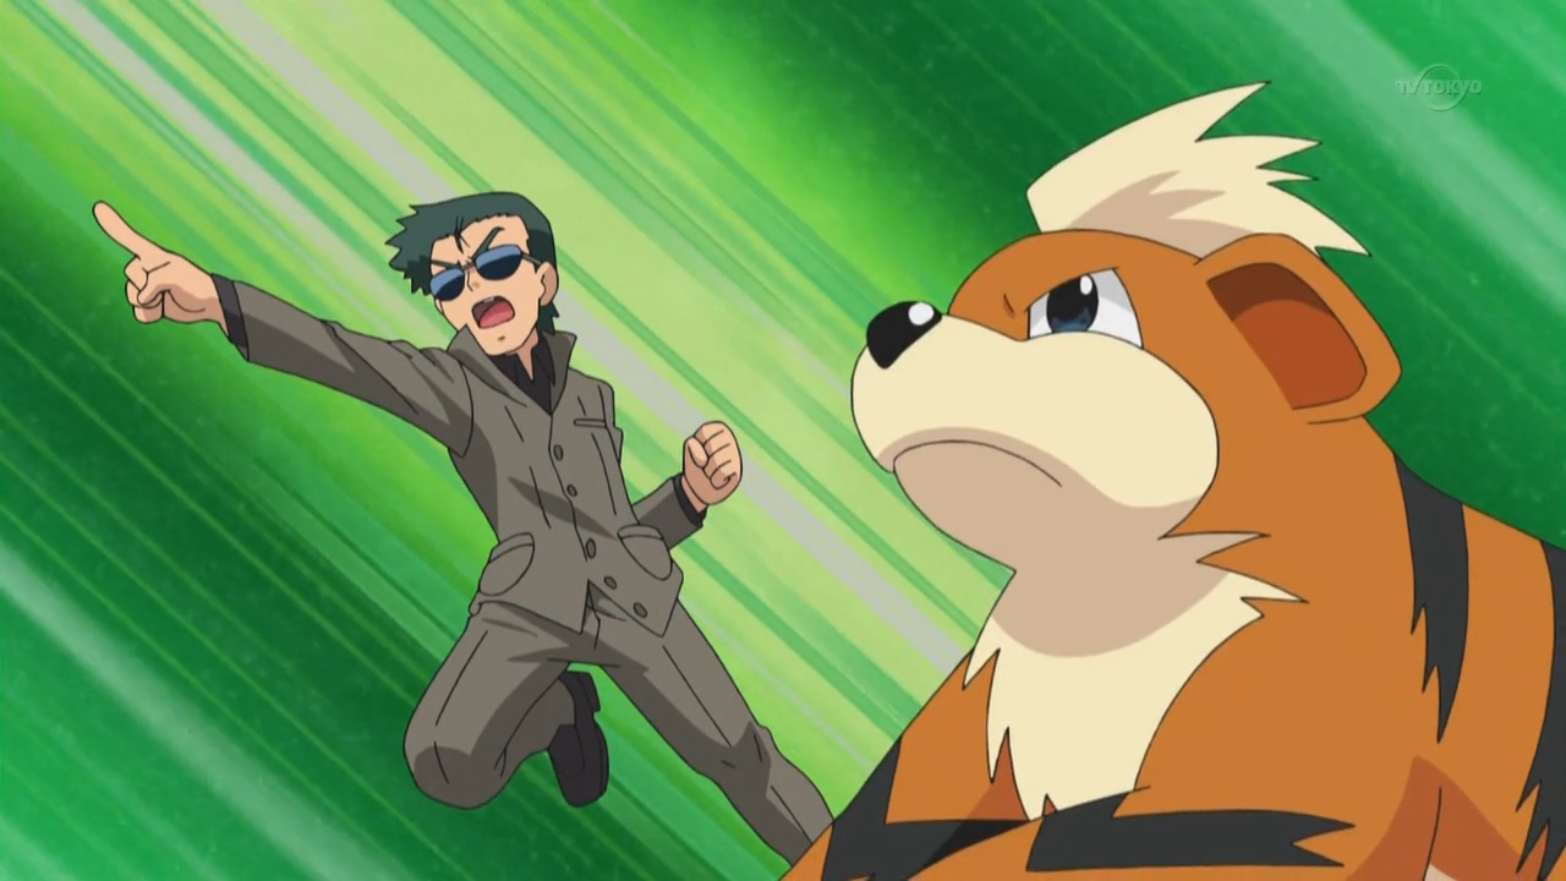 Tedesco sent Growlithe to defeat Vanillite, who attempted to attack.